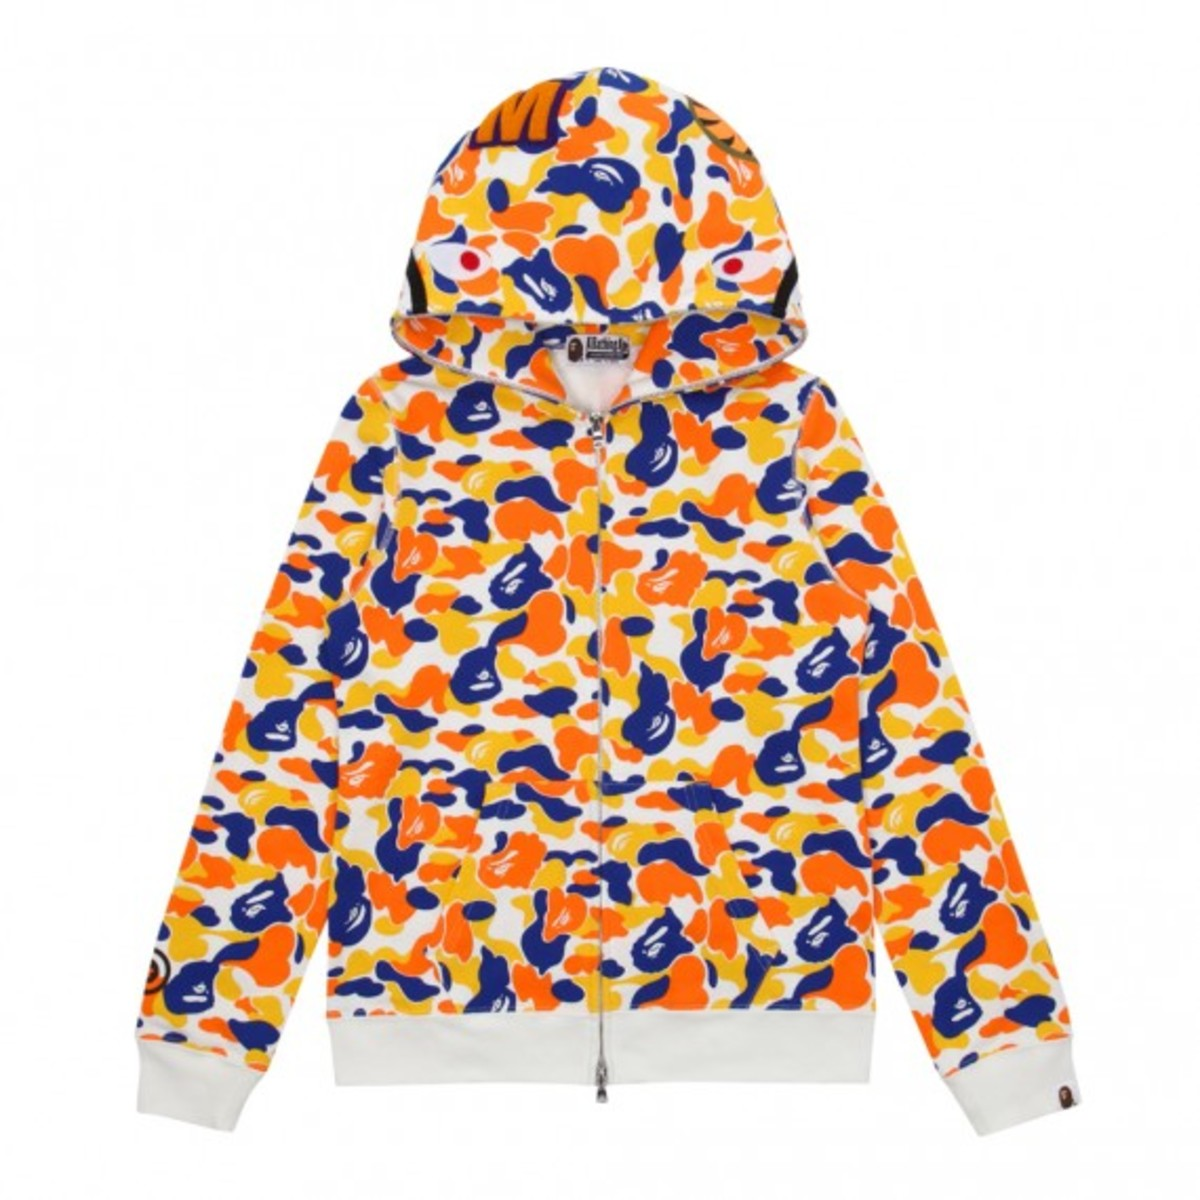 a-bathing-ape-i.t-ezhop-camouflage-collecion-40